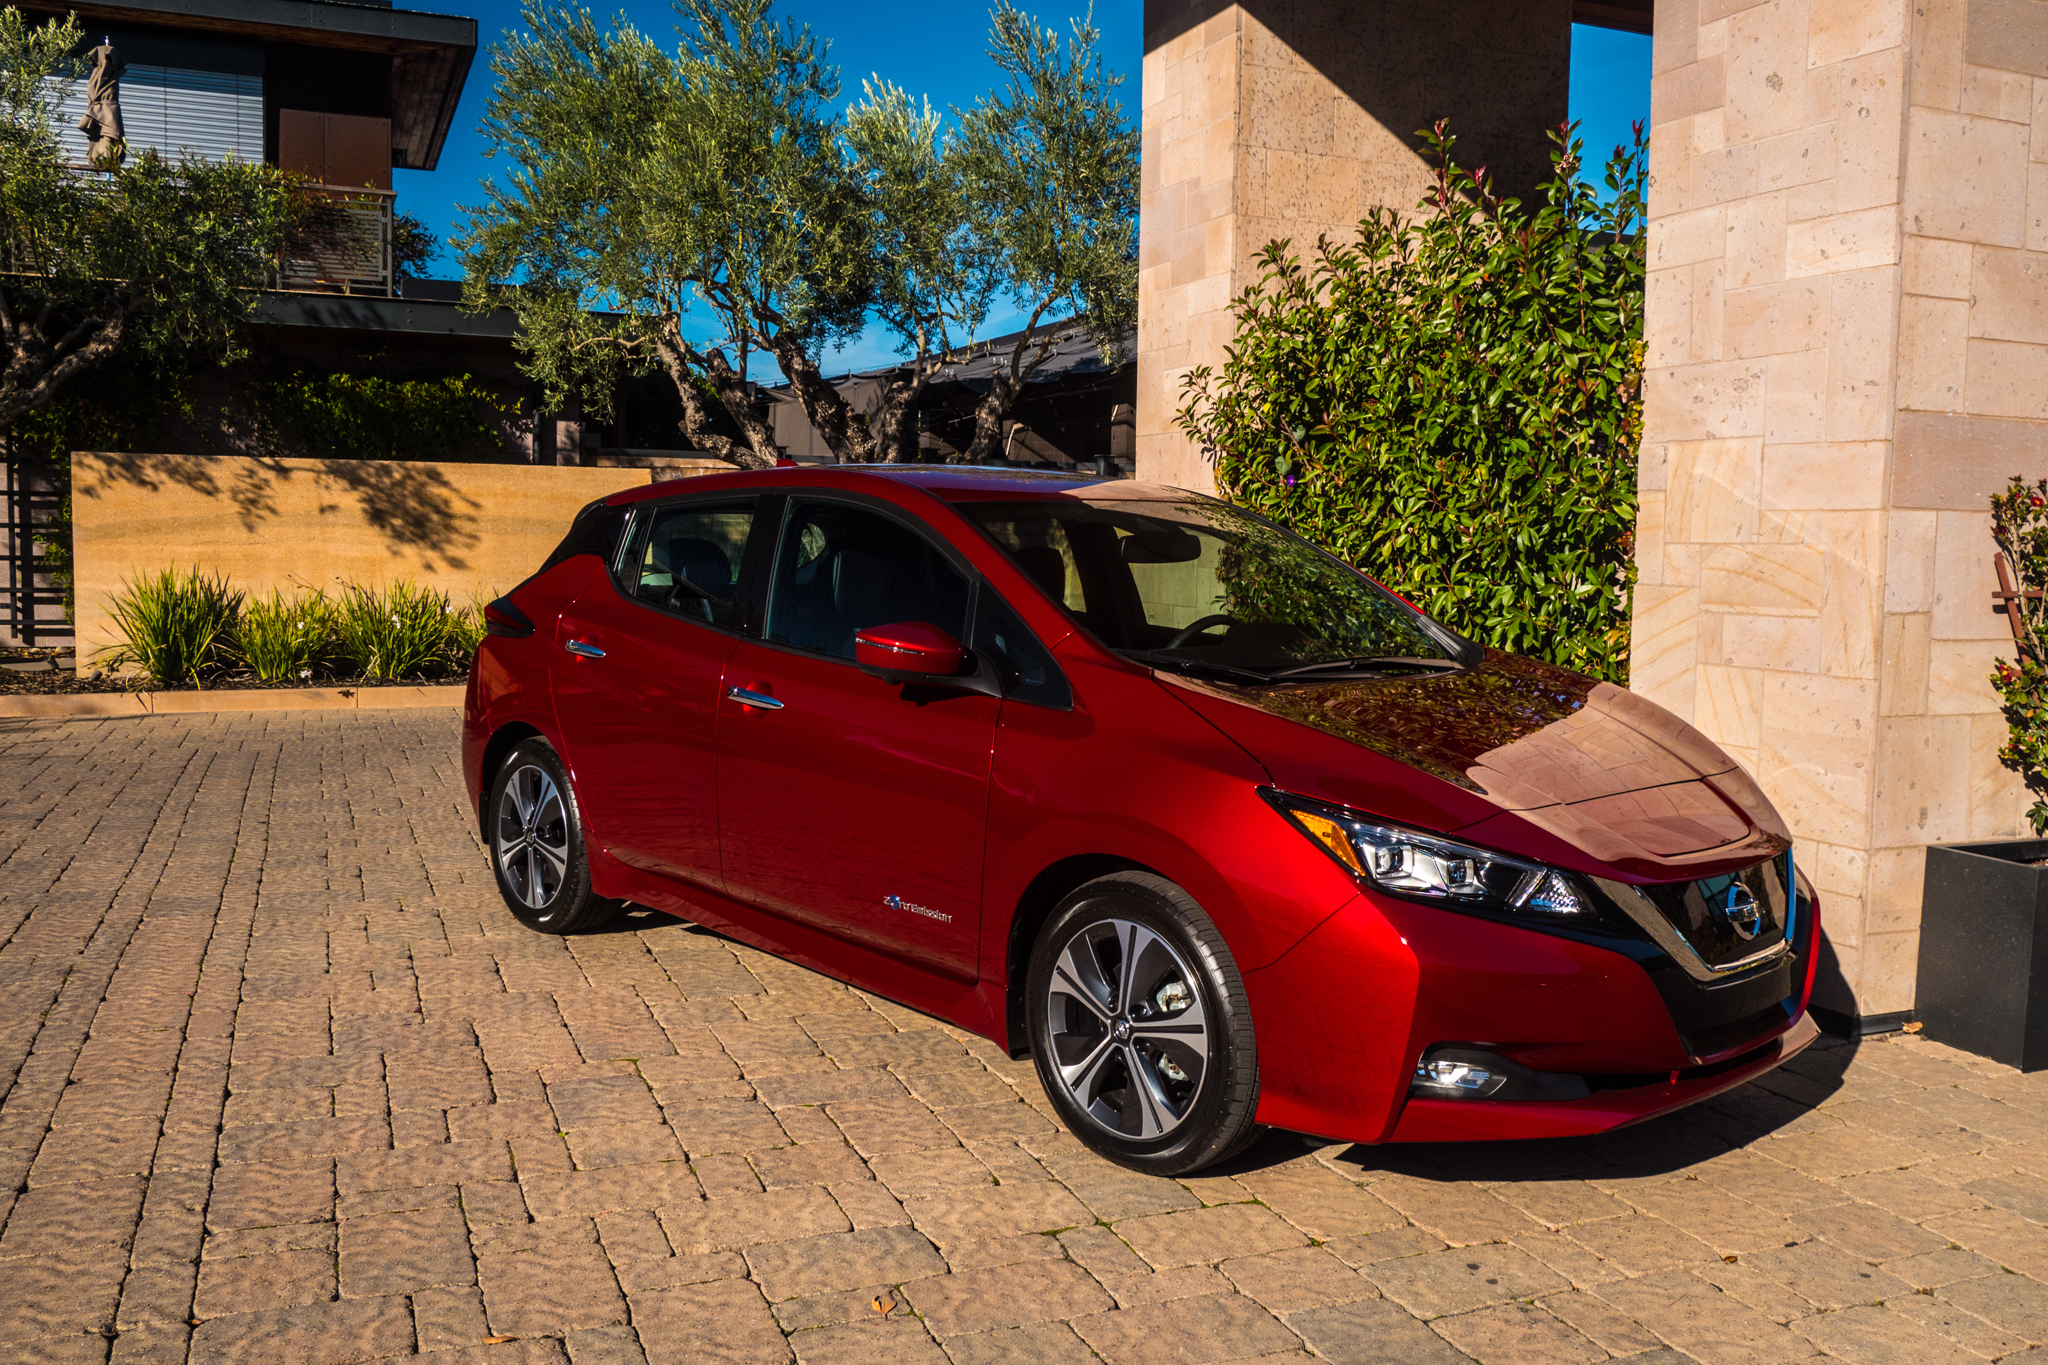 The all new 2018 Nissan Leaf driven